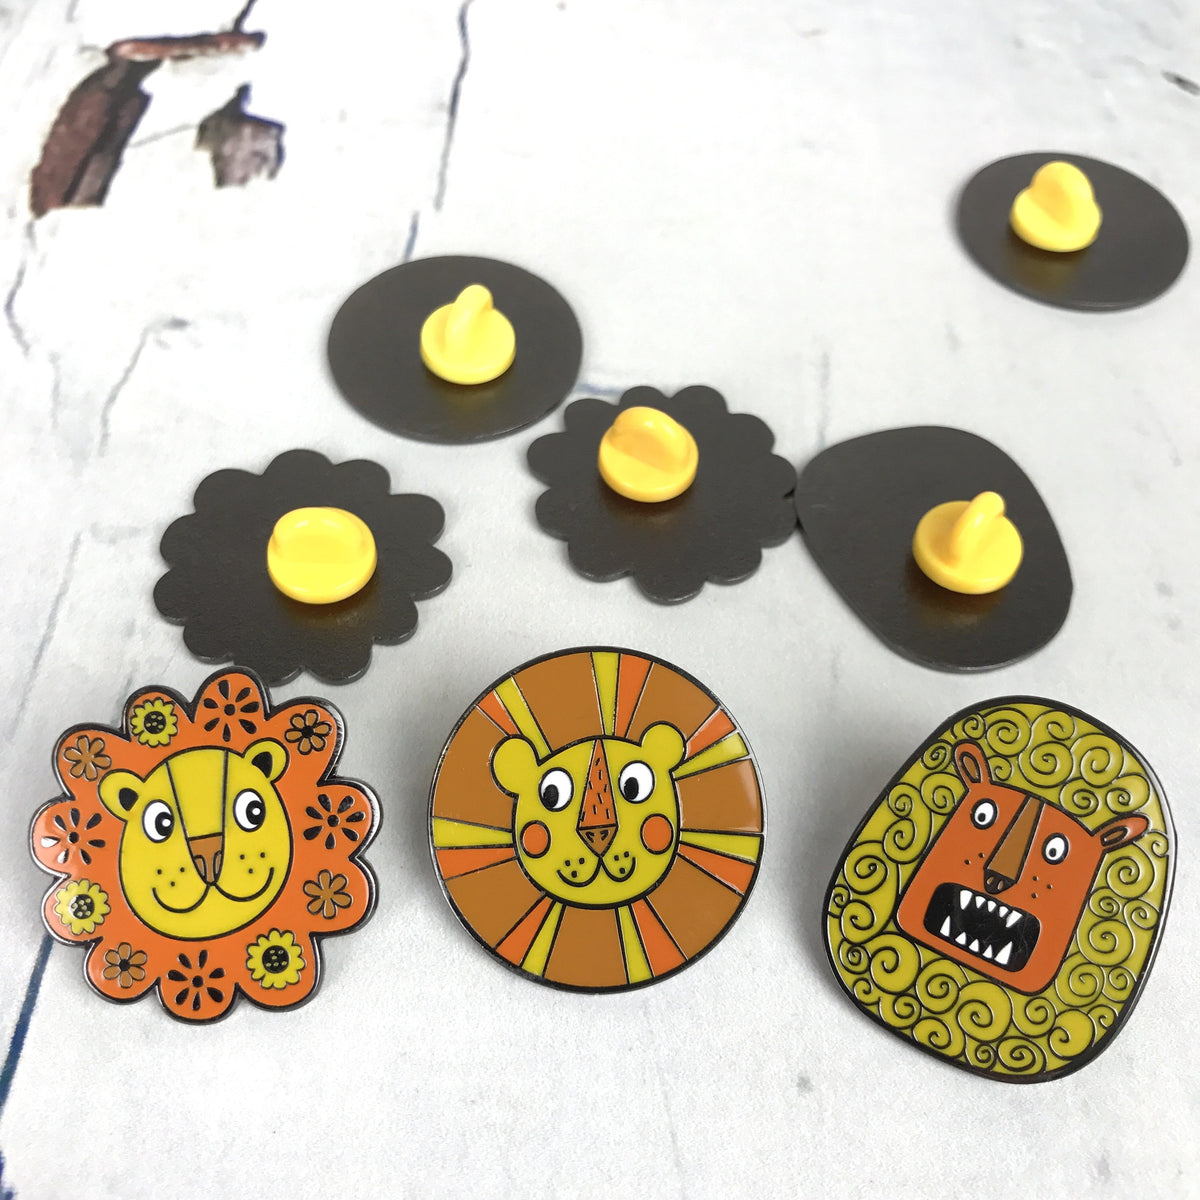 Rory the Roaring Lion Enamel Pin - Group View